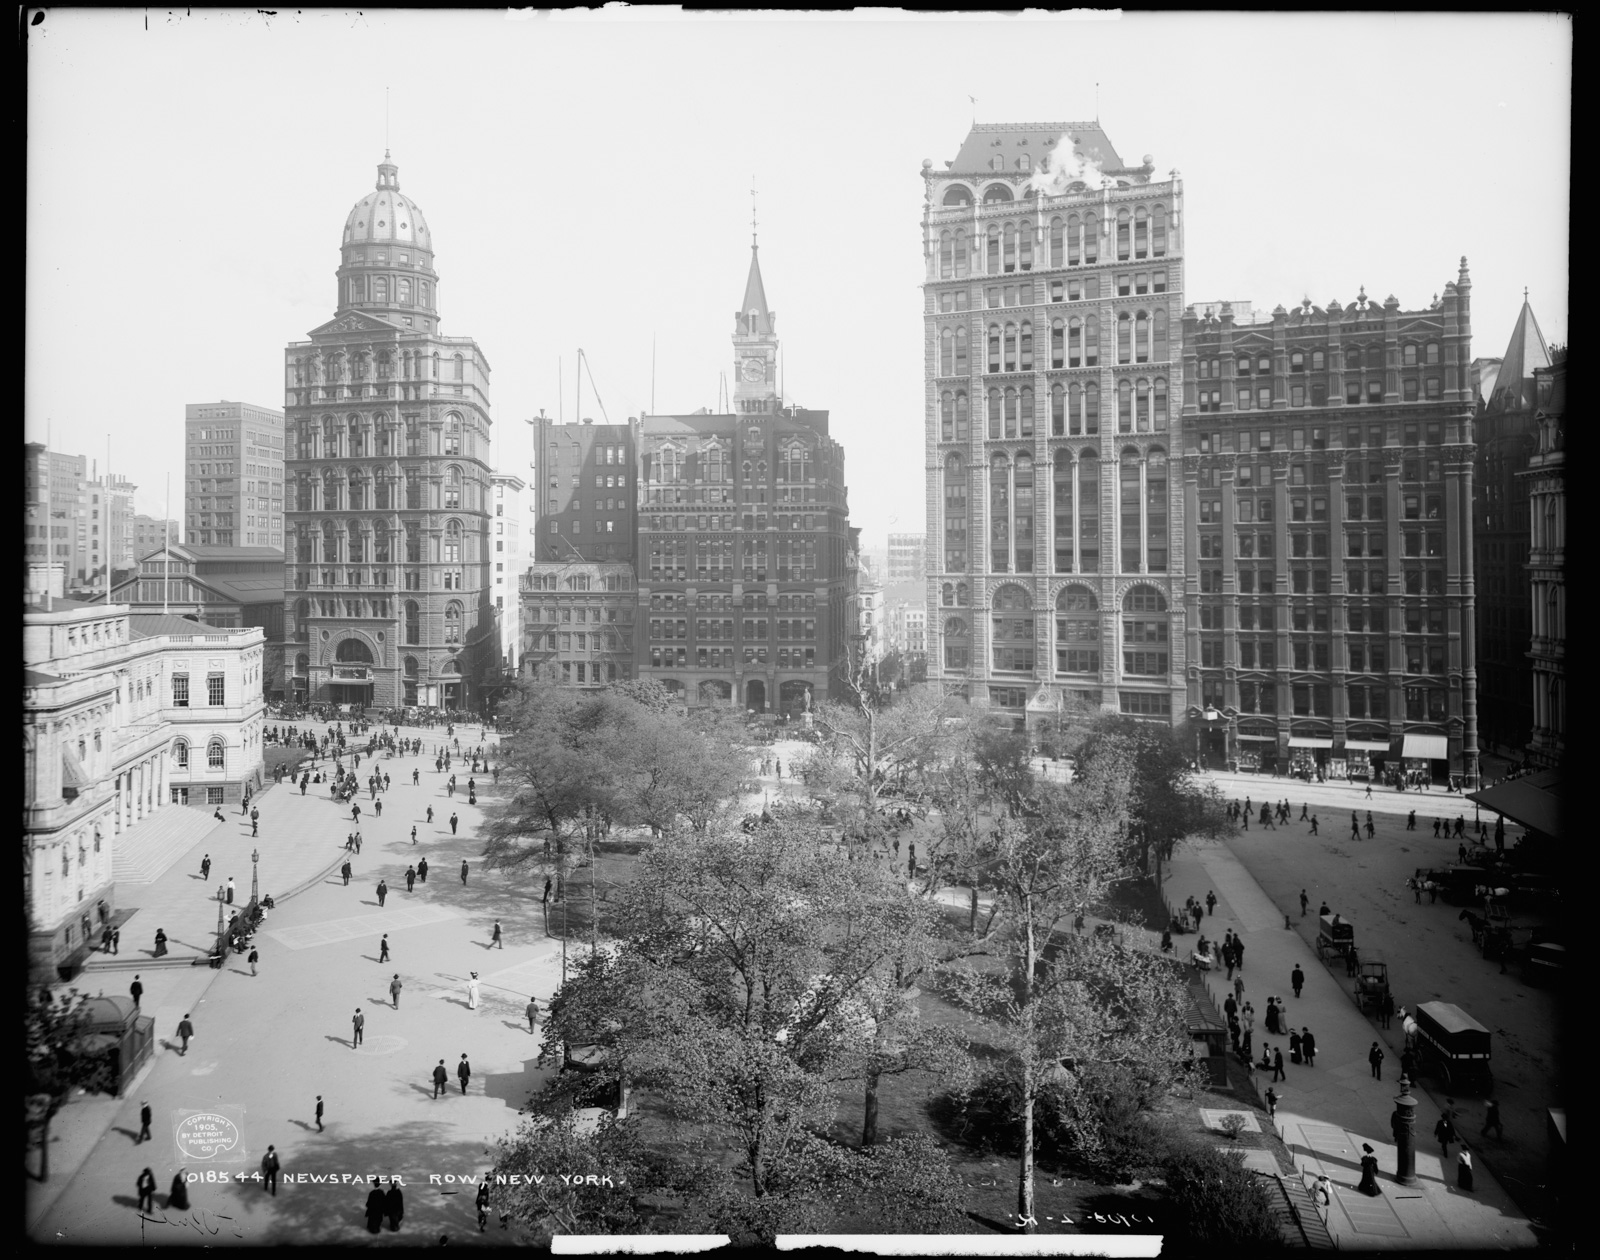 Newspaper Row, [Park Row], New York - Foto The Library of Congress - Detroit Publishing Co.